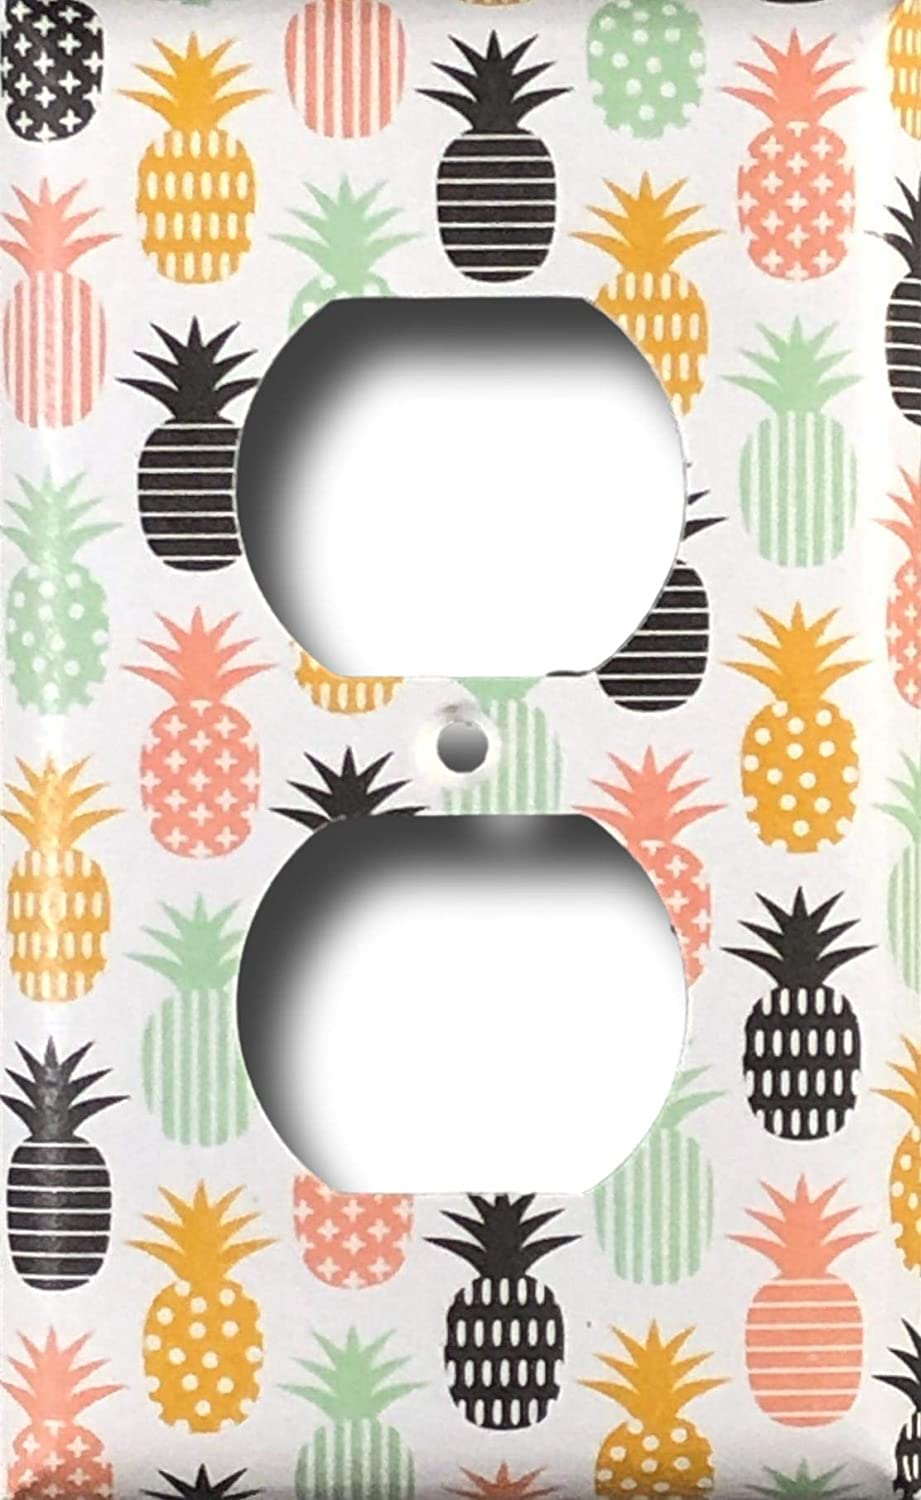 Pineapple Decorative Outlet Wall Plate Cover Standard//Midway or Jumbo Size